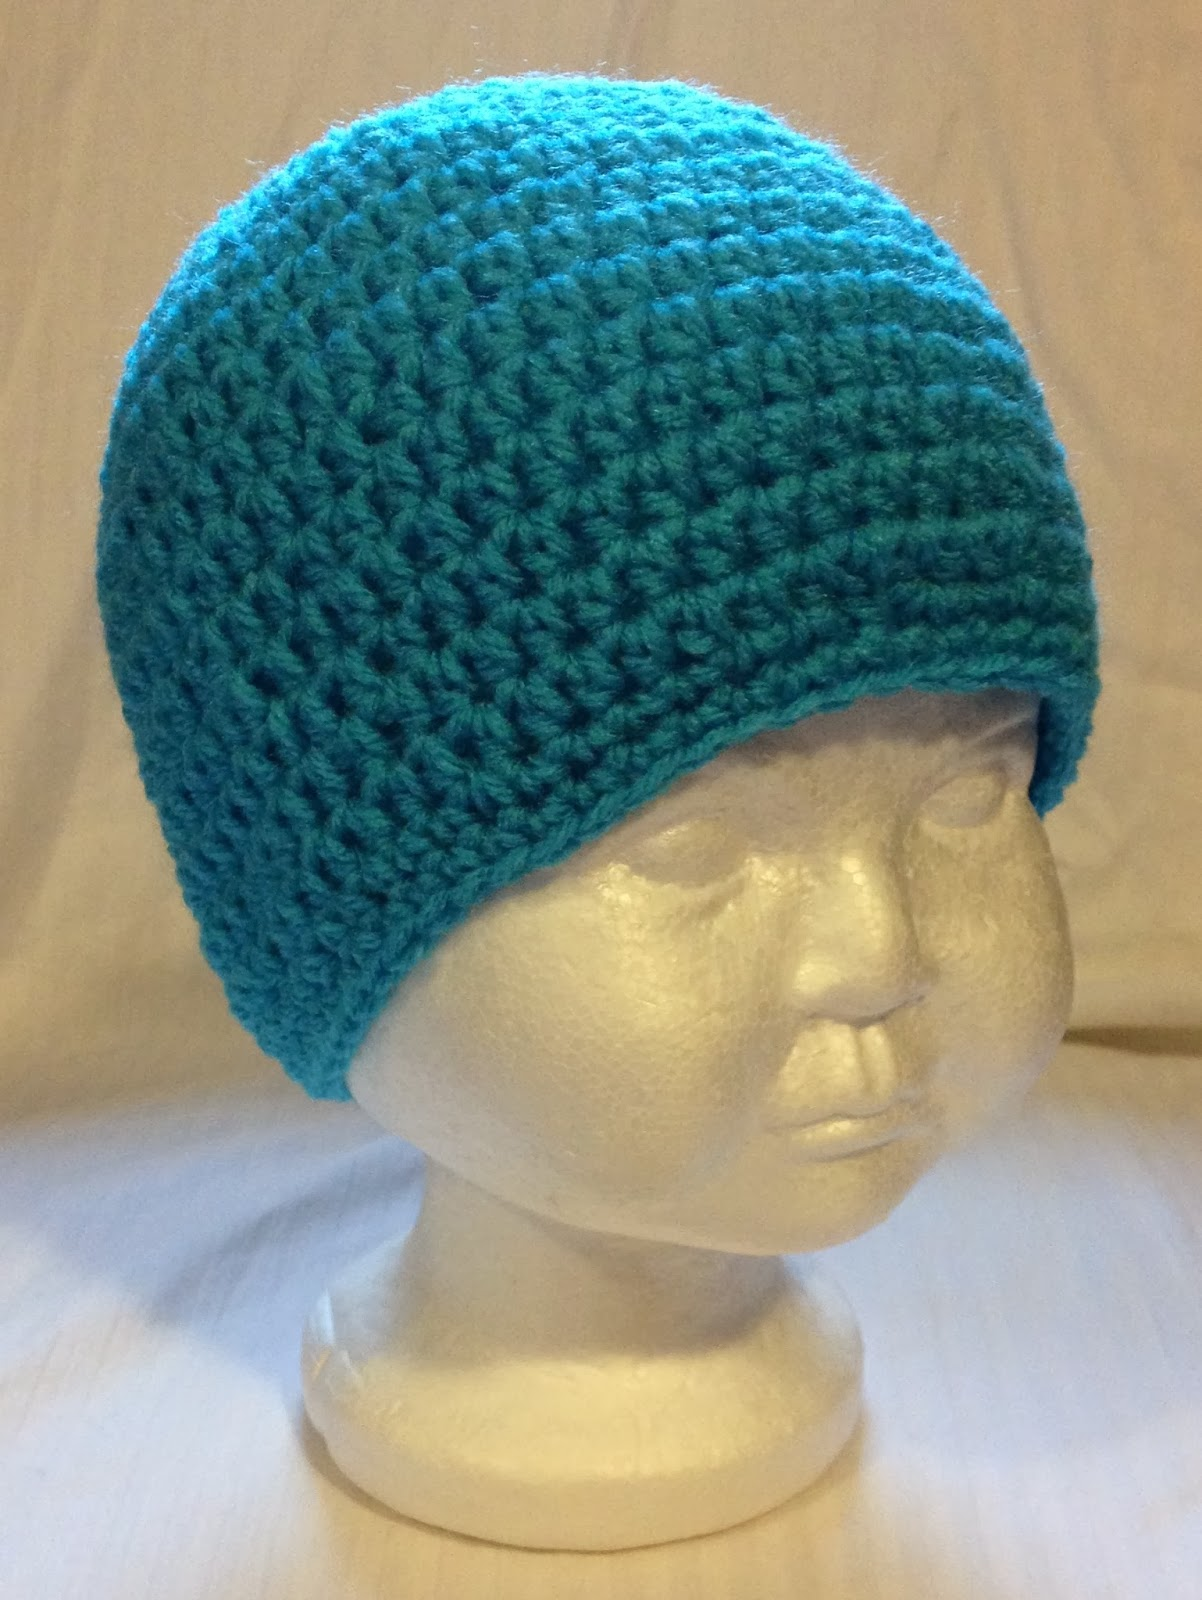 Basic Crochet Pattern For Hat : Free Basic Hat Crocheted Pattern